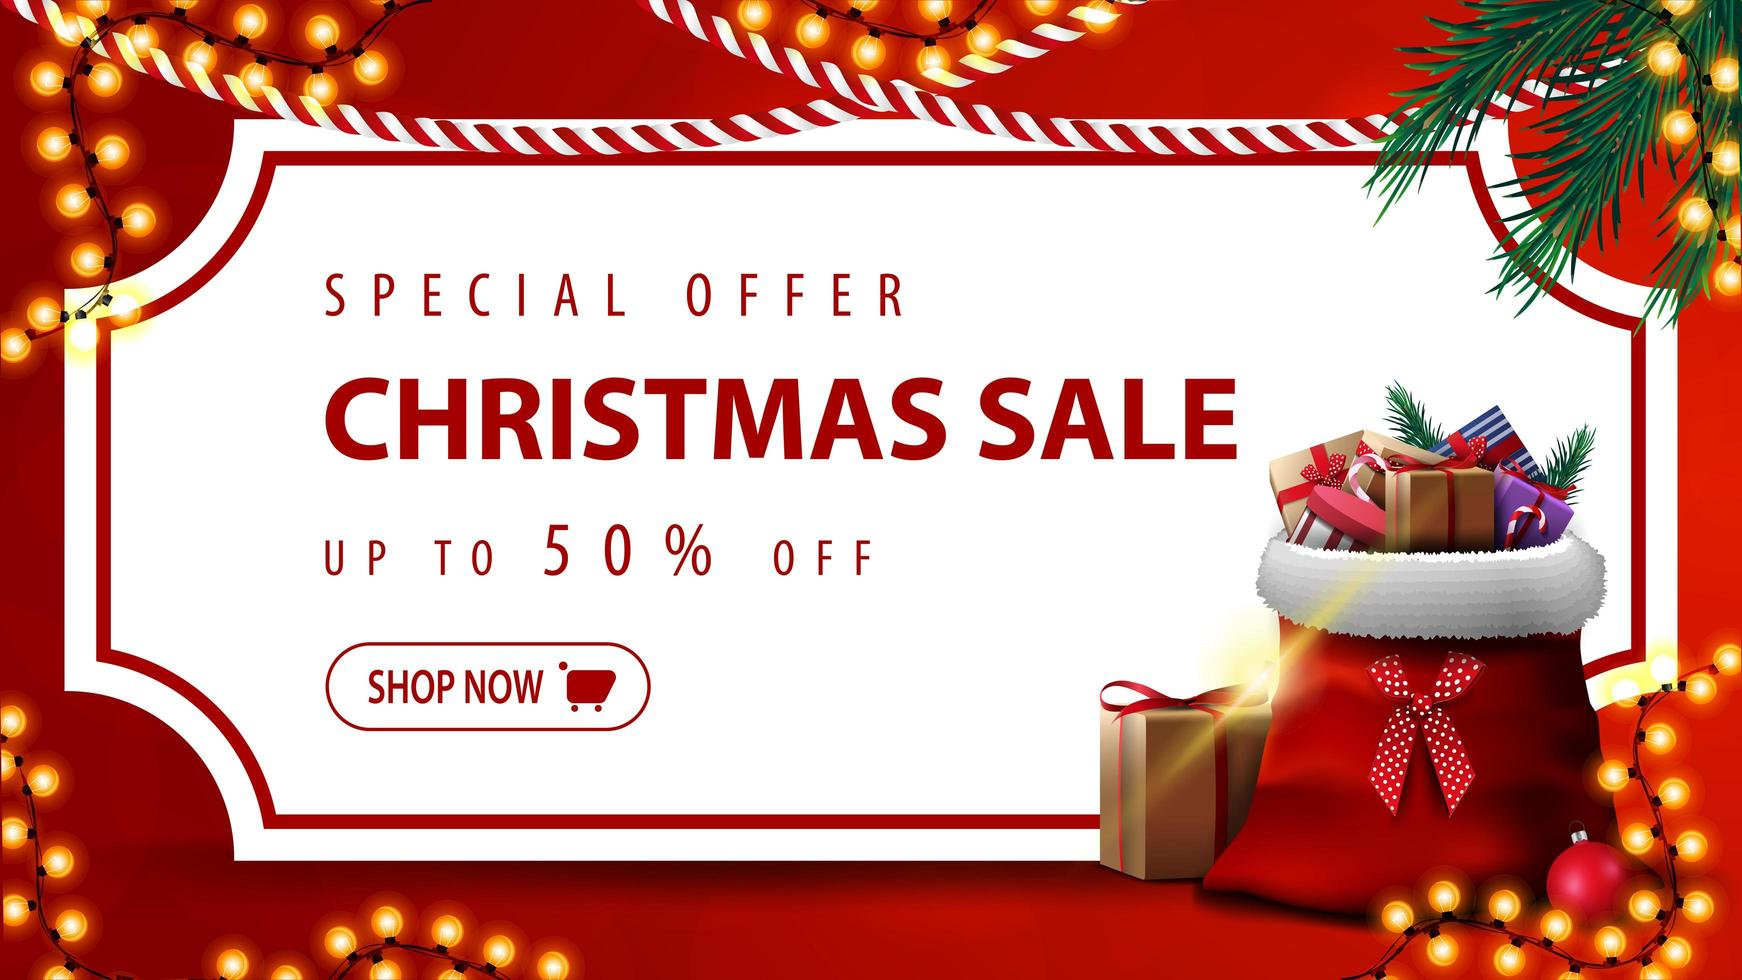 Special offer, Christmas sale, up to 50 off, red discount banner with white paper sheet in the form of vintage ticket, Christmas tree branches, garlands and Santa Claus bag with presents vector